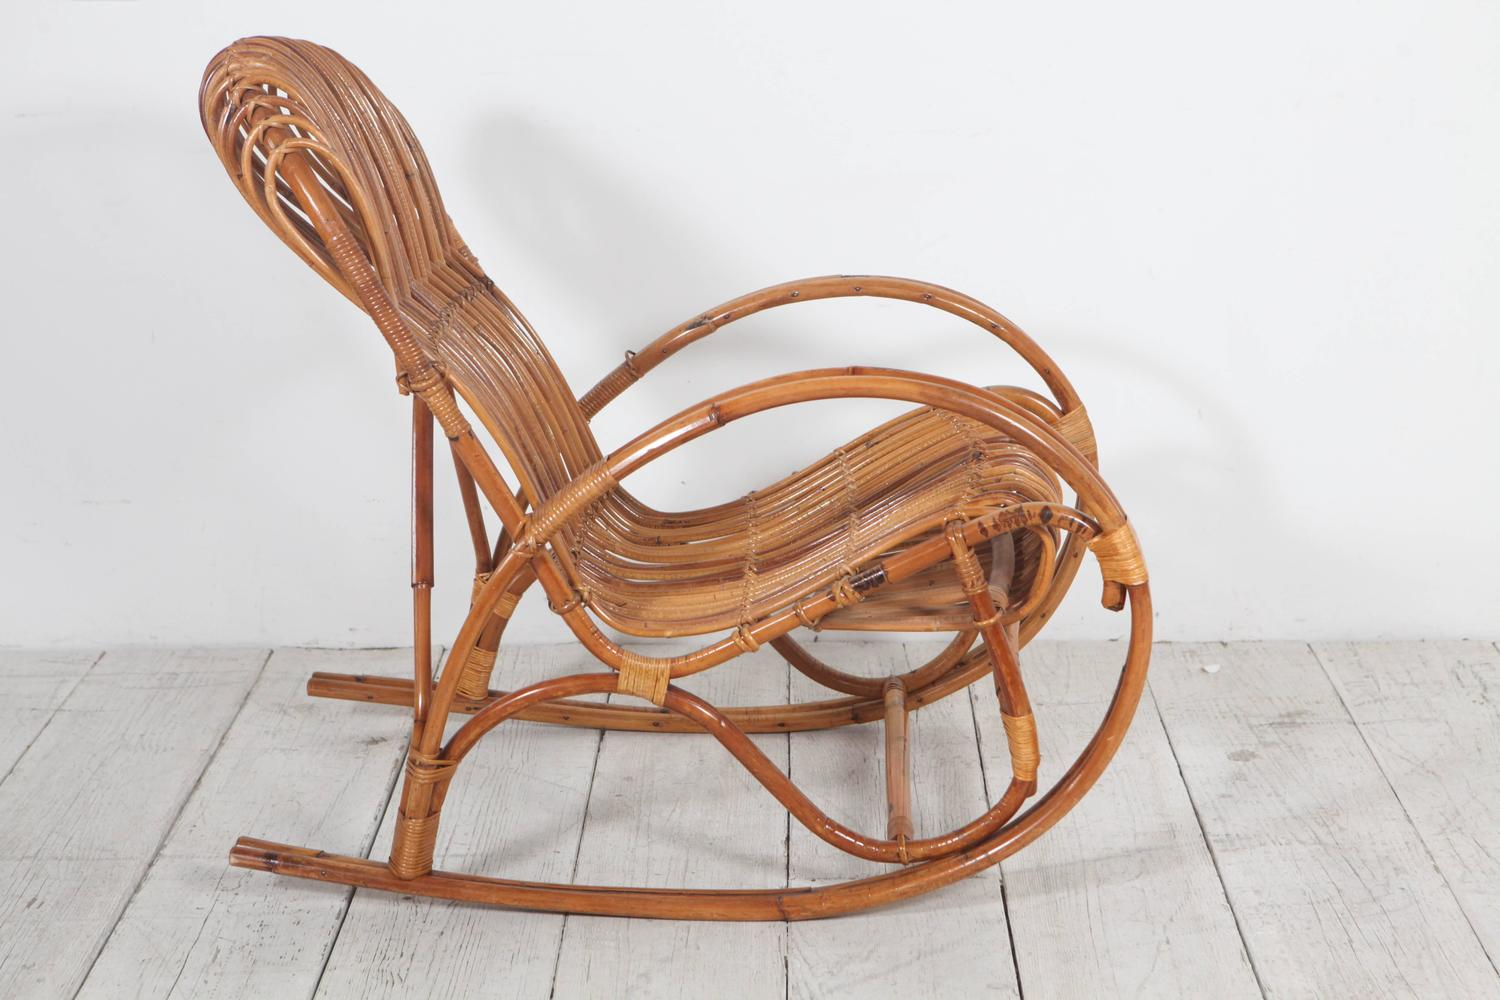 Vintage Italian Bamboo Rocking Chair For Sale at 1stdibs